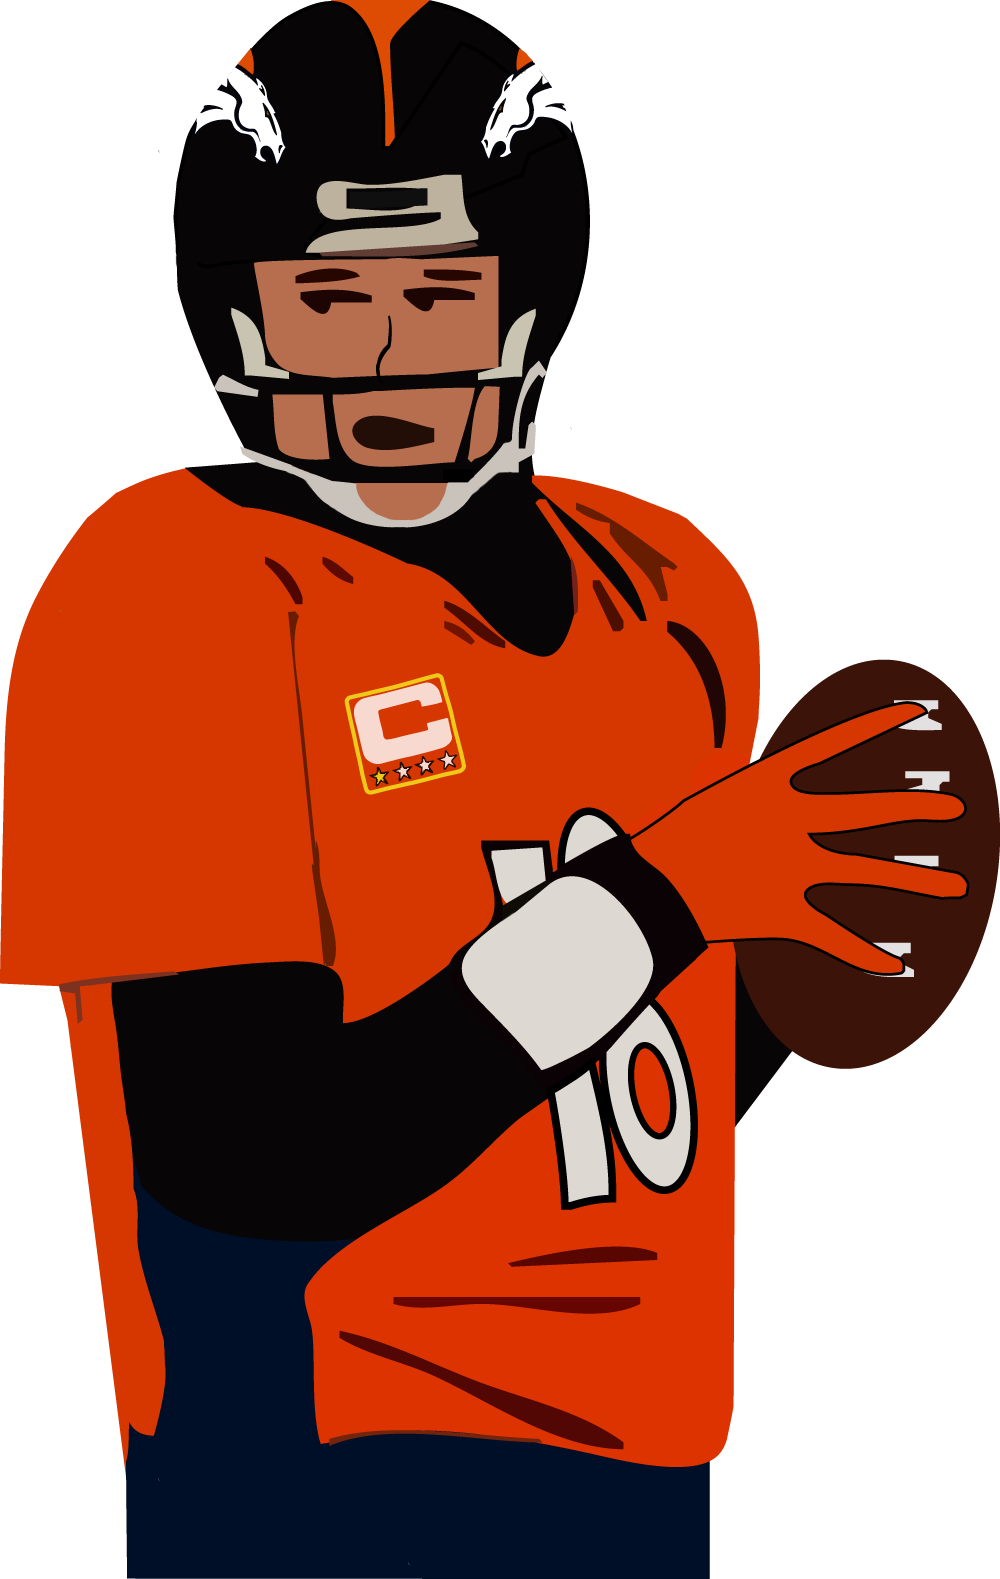 Pitman panthers basketball clipart vector stock Super Bowl 50 Preview: Panthers vs. Broncos with Gazette and Star ... vector stock